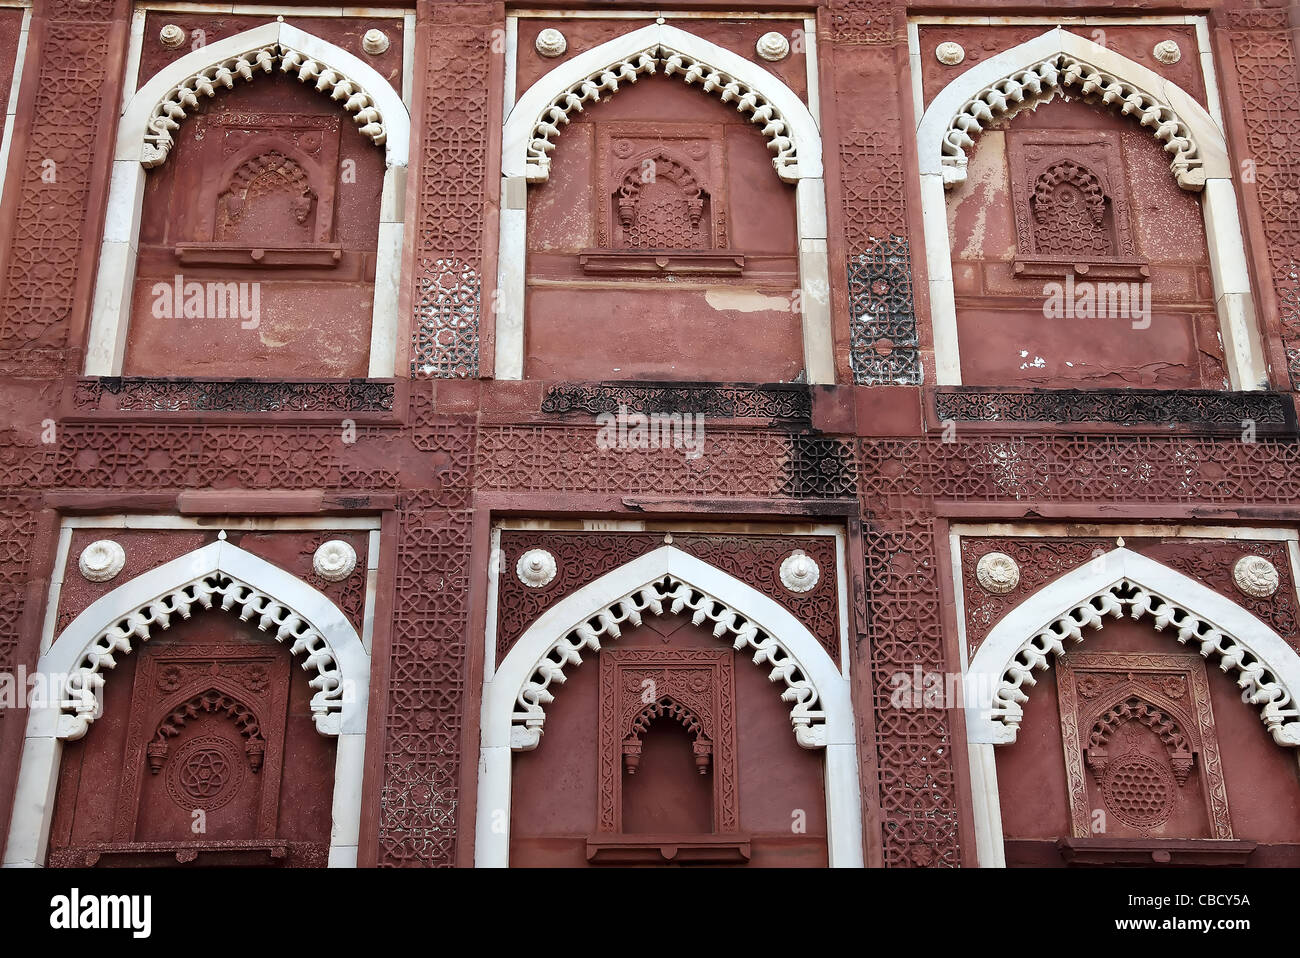 Perforated Window,Architecture,Historical,Indoslimic Architecture,Patten,Detail of Fort,Fort,Tourist Spot,Indian - Stock Image